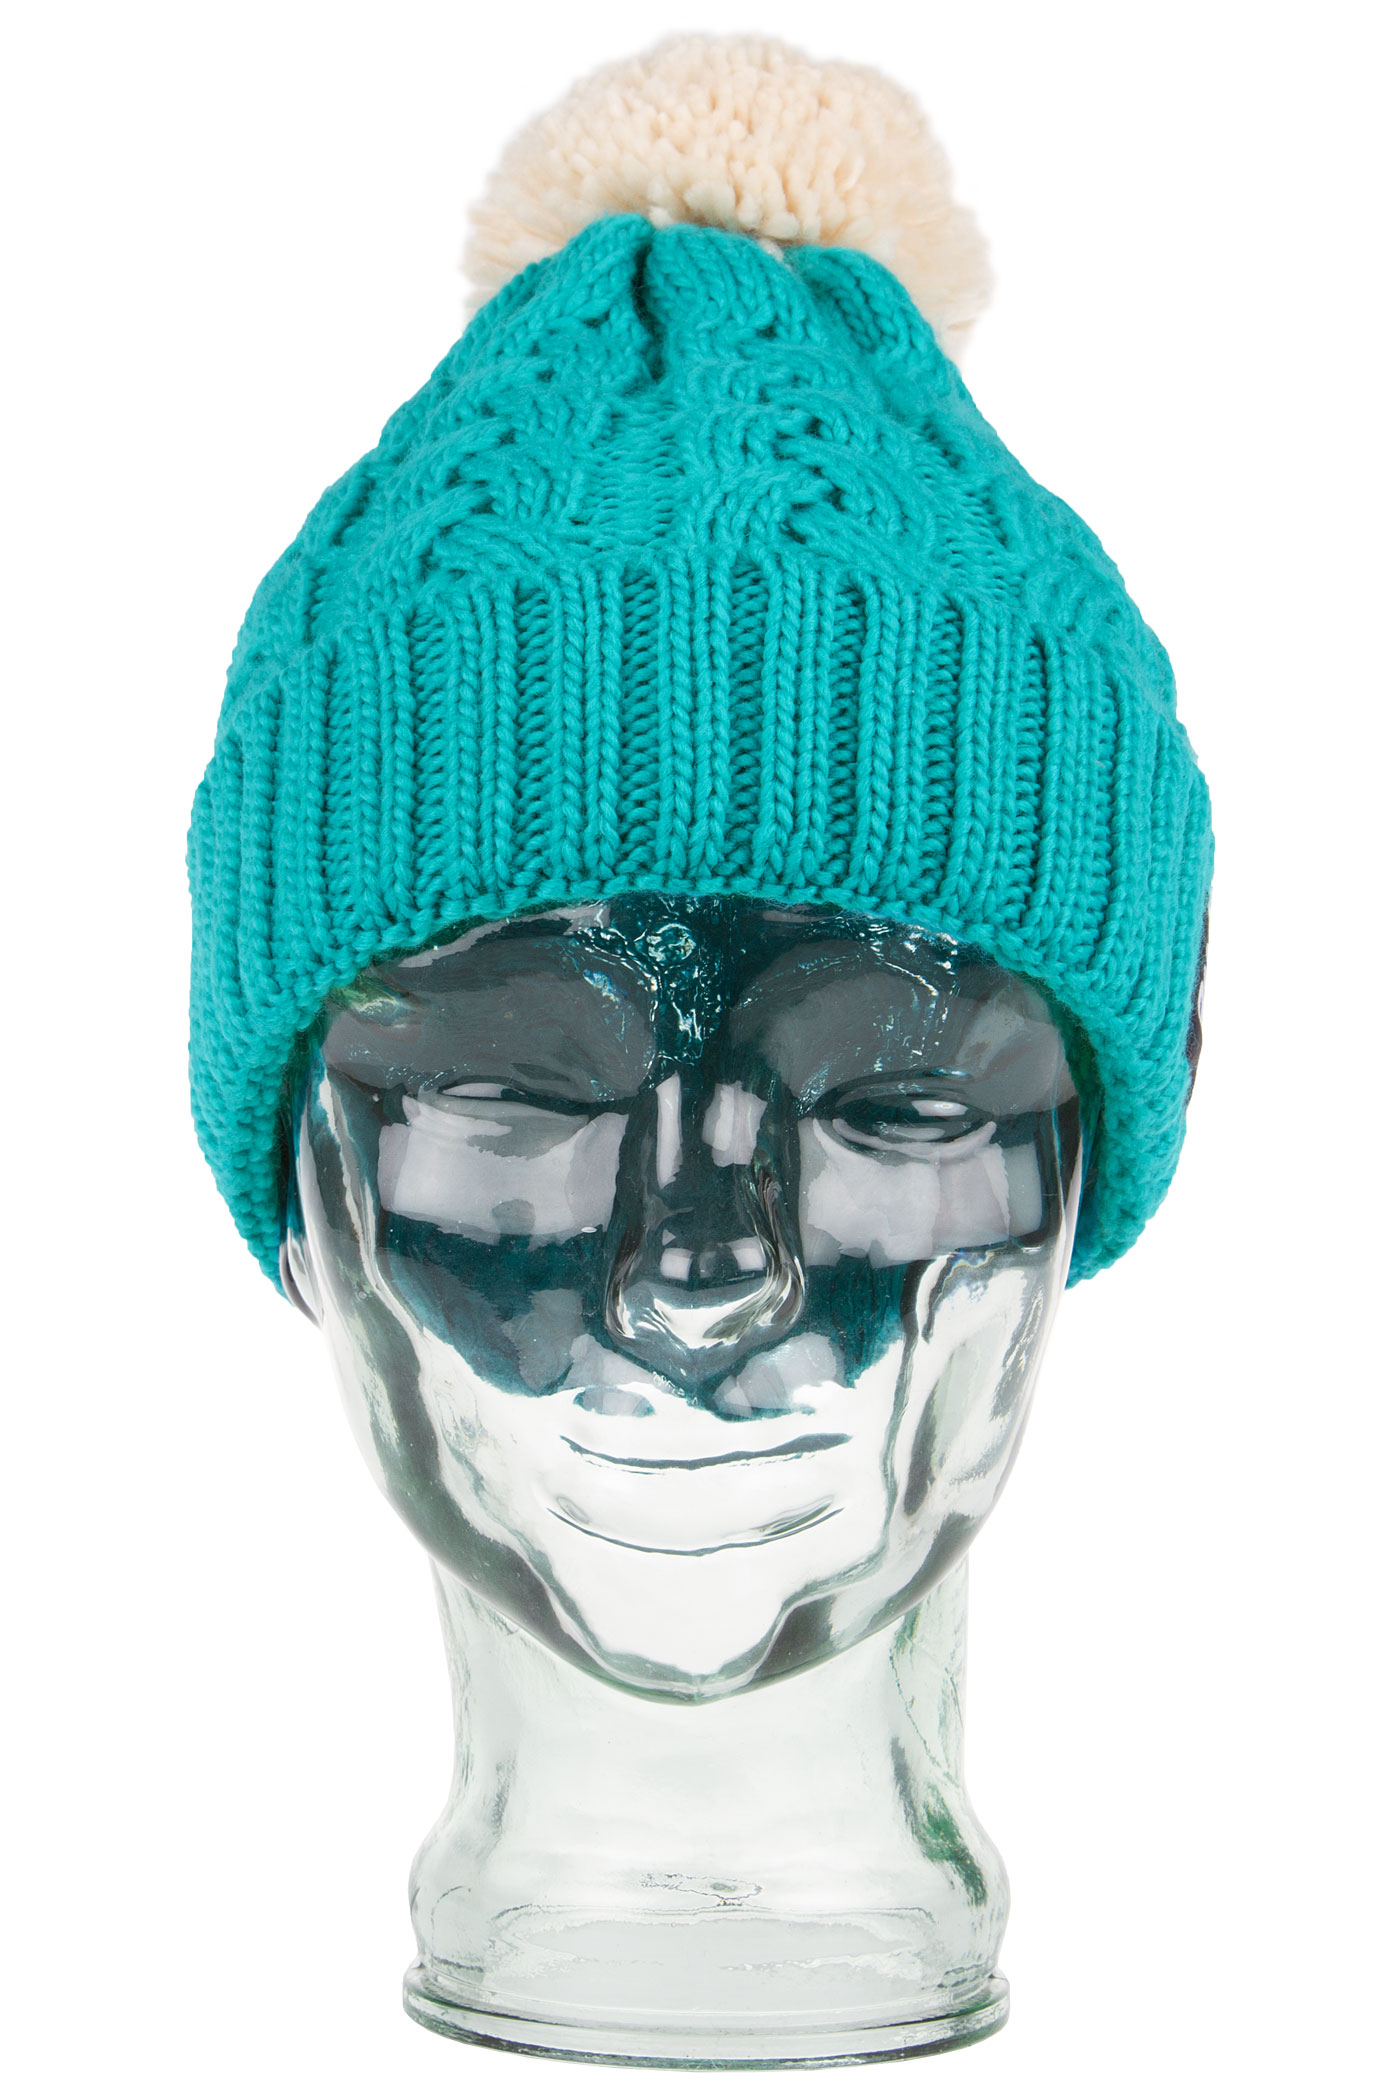 Home Page Accessories Beanies SK8DLX Knitty Beanie (green fog)